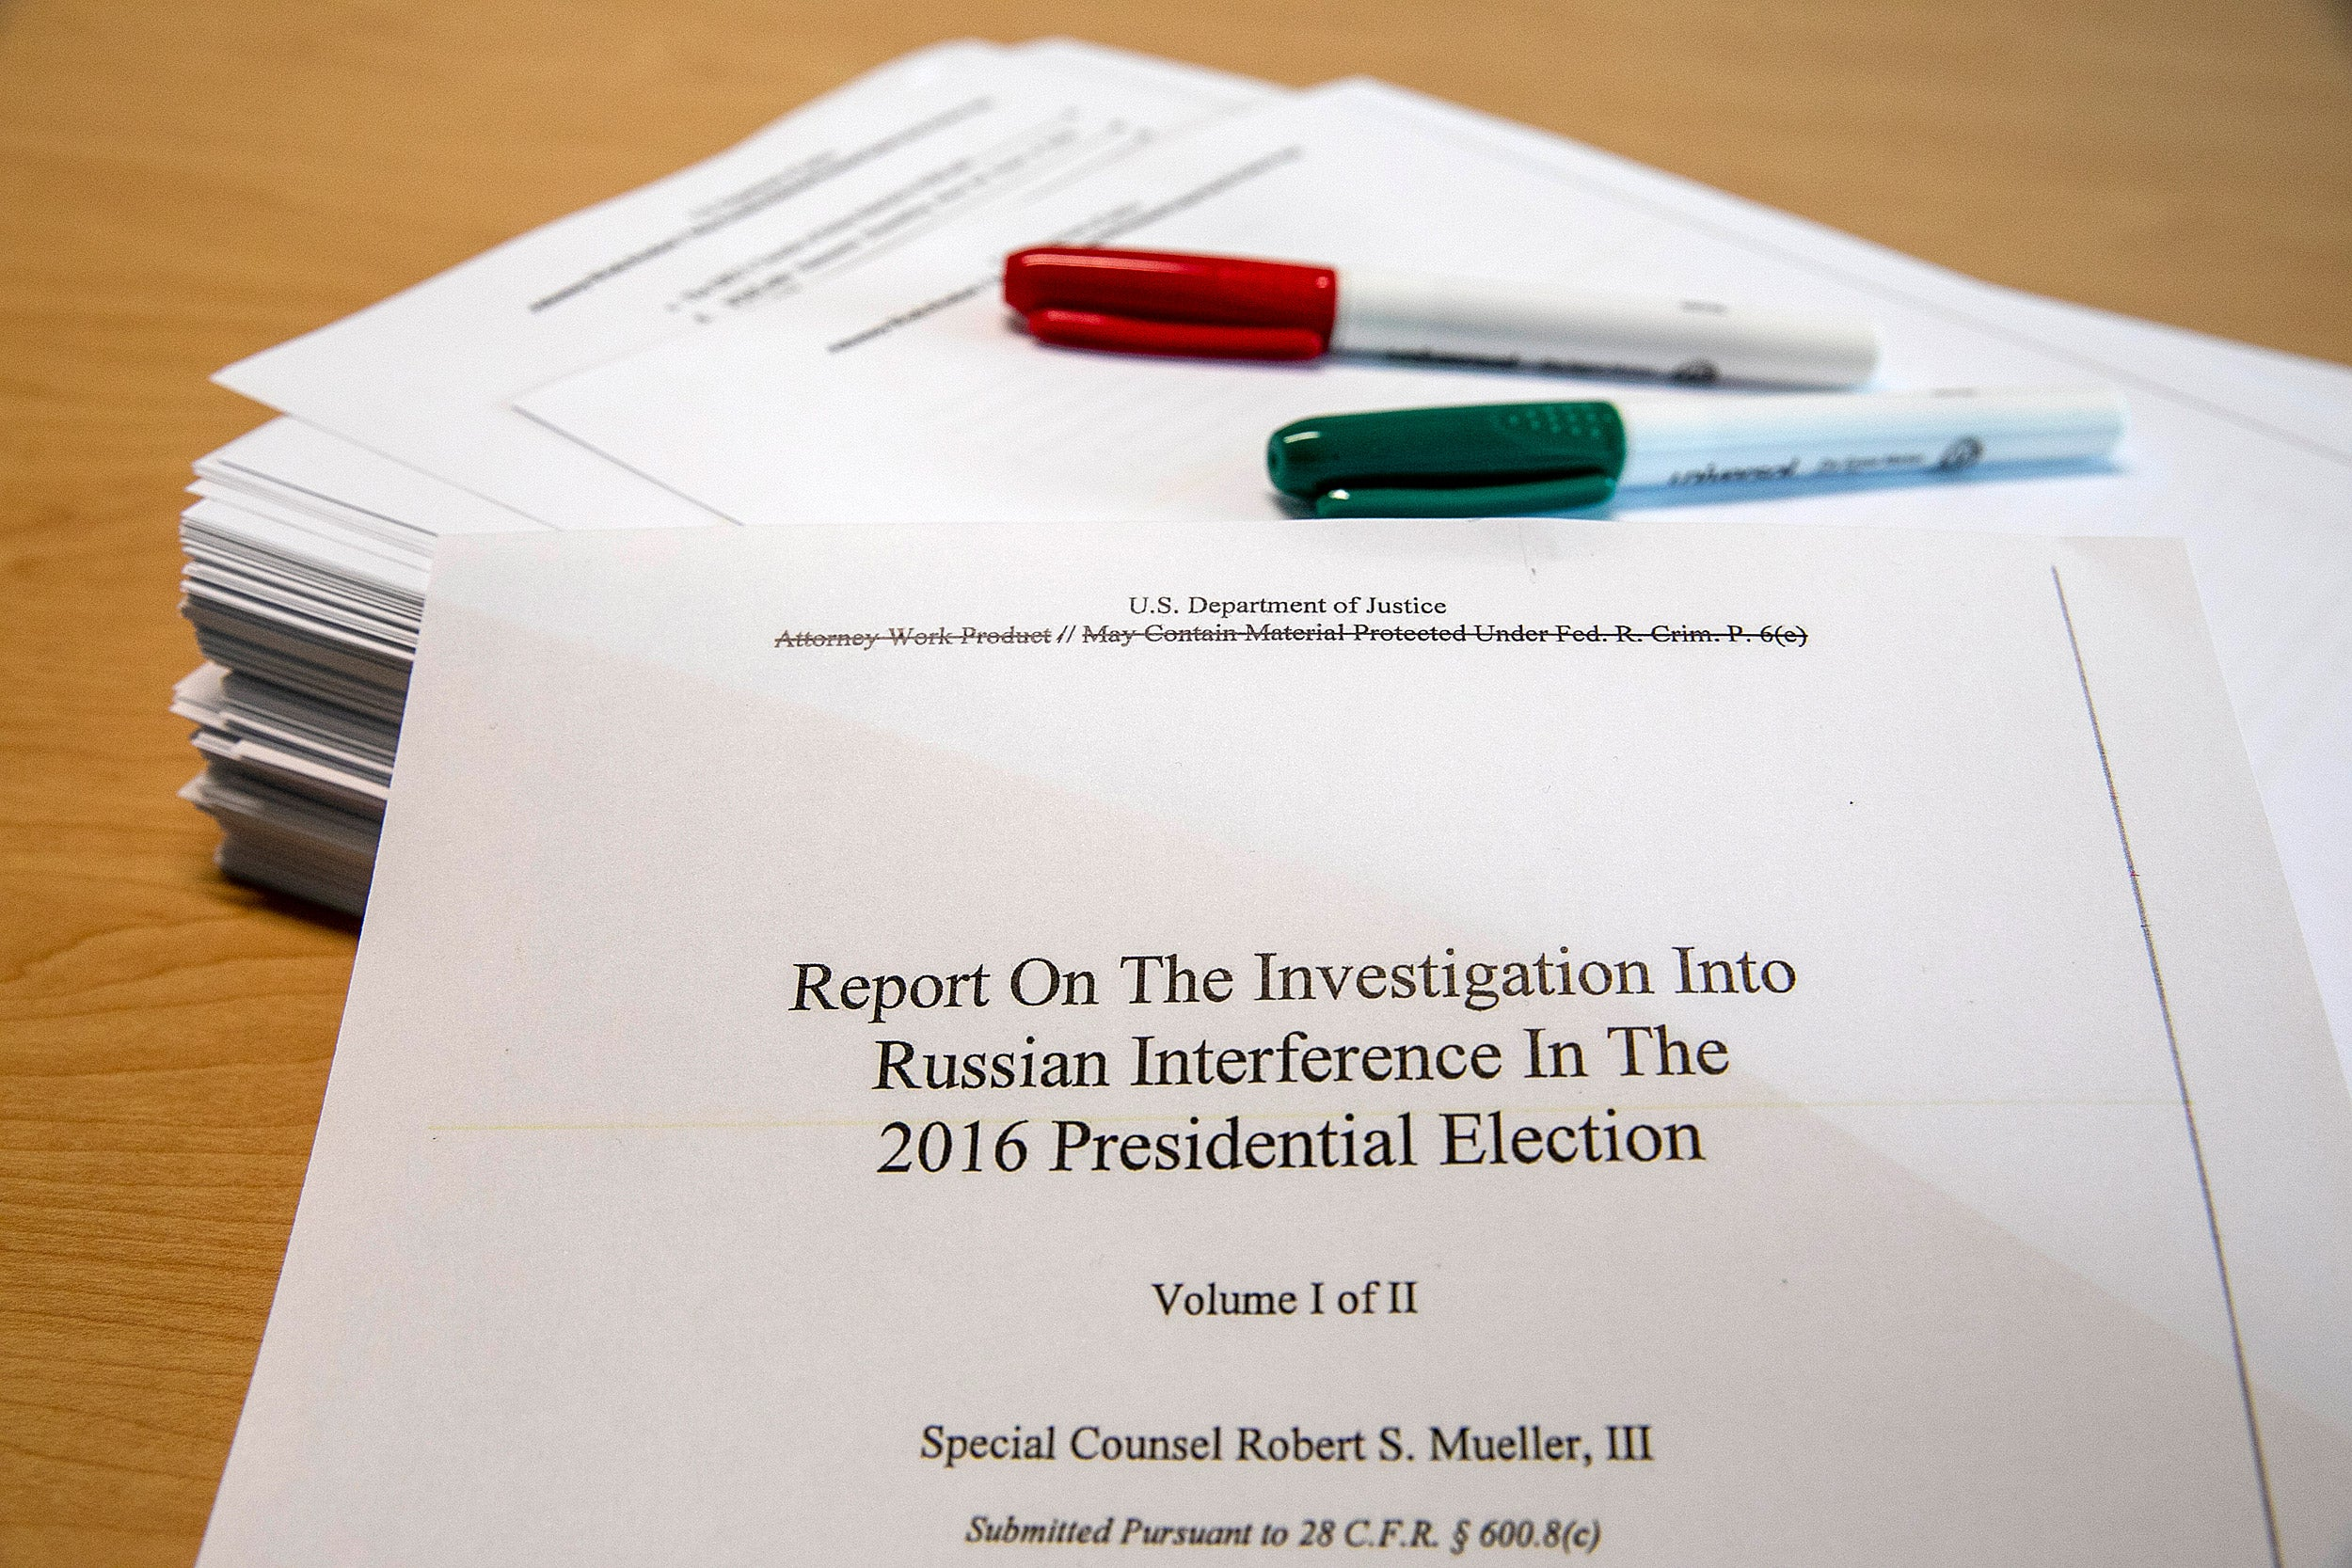 The redacted version of Robert Mueller's investigative report was released on Thursday.